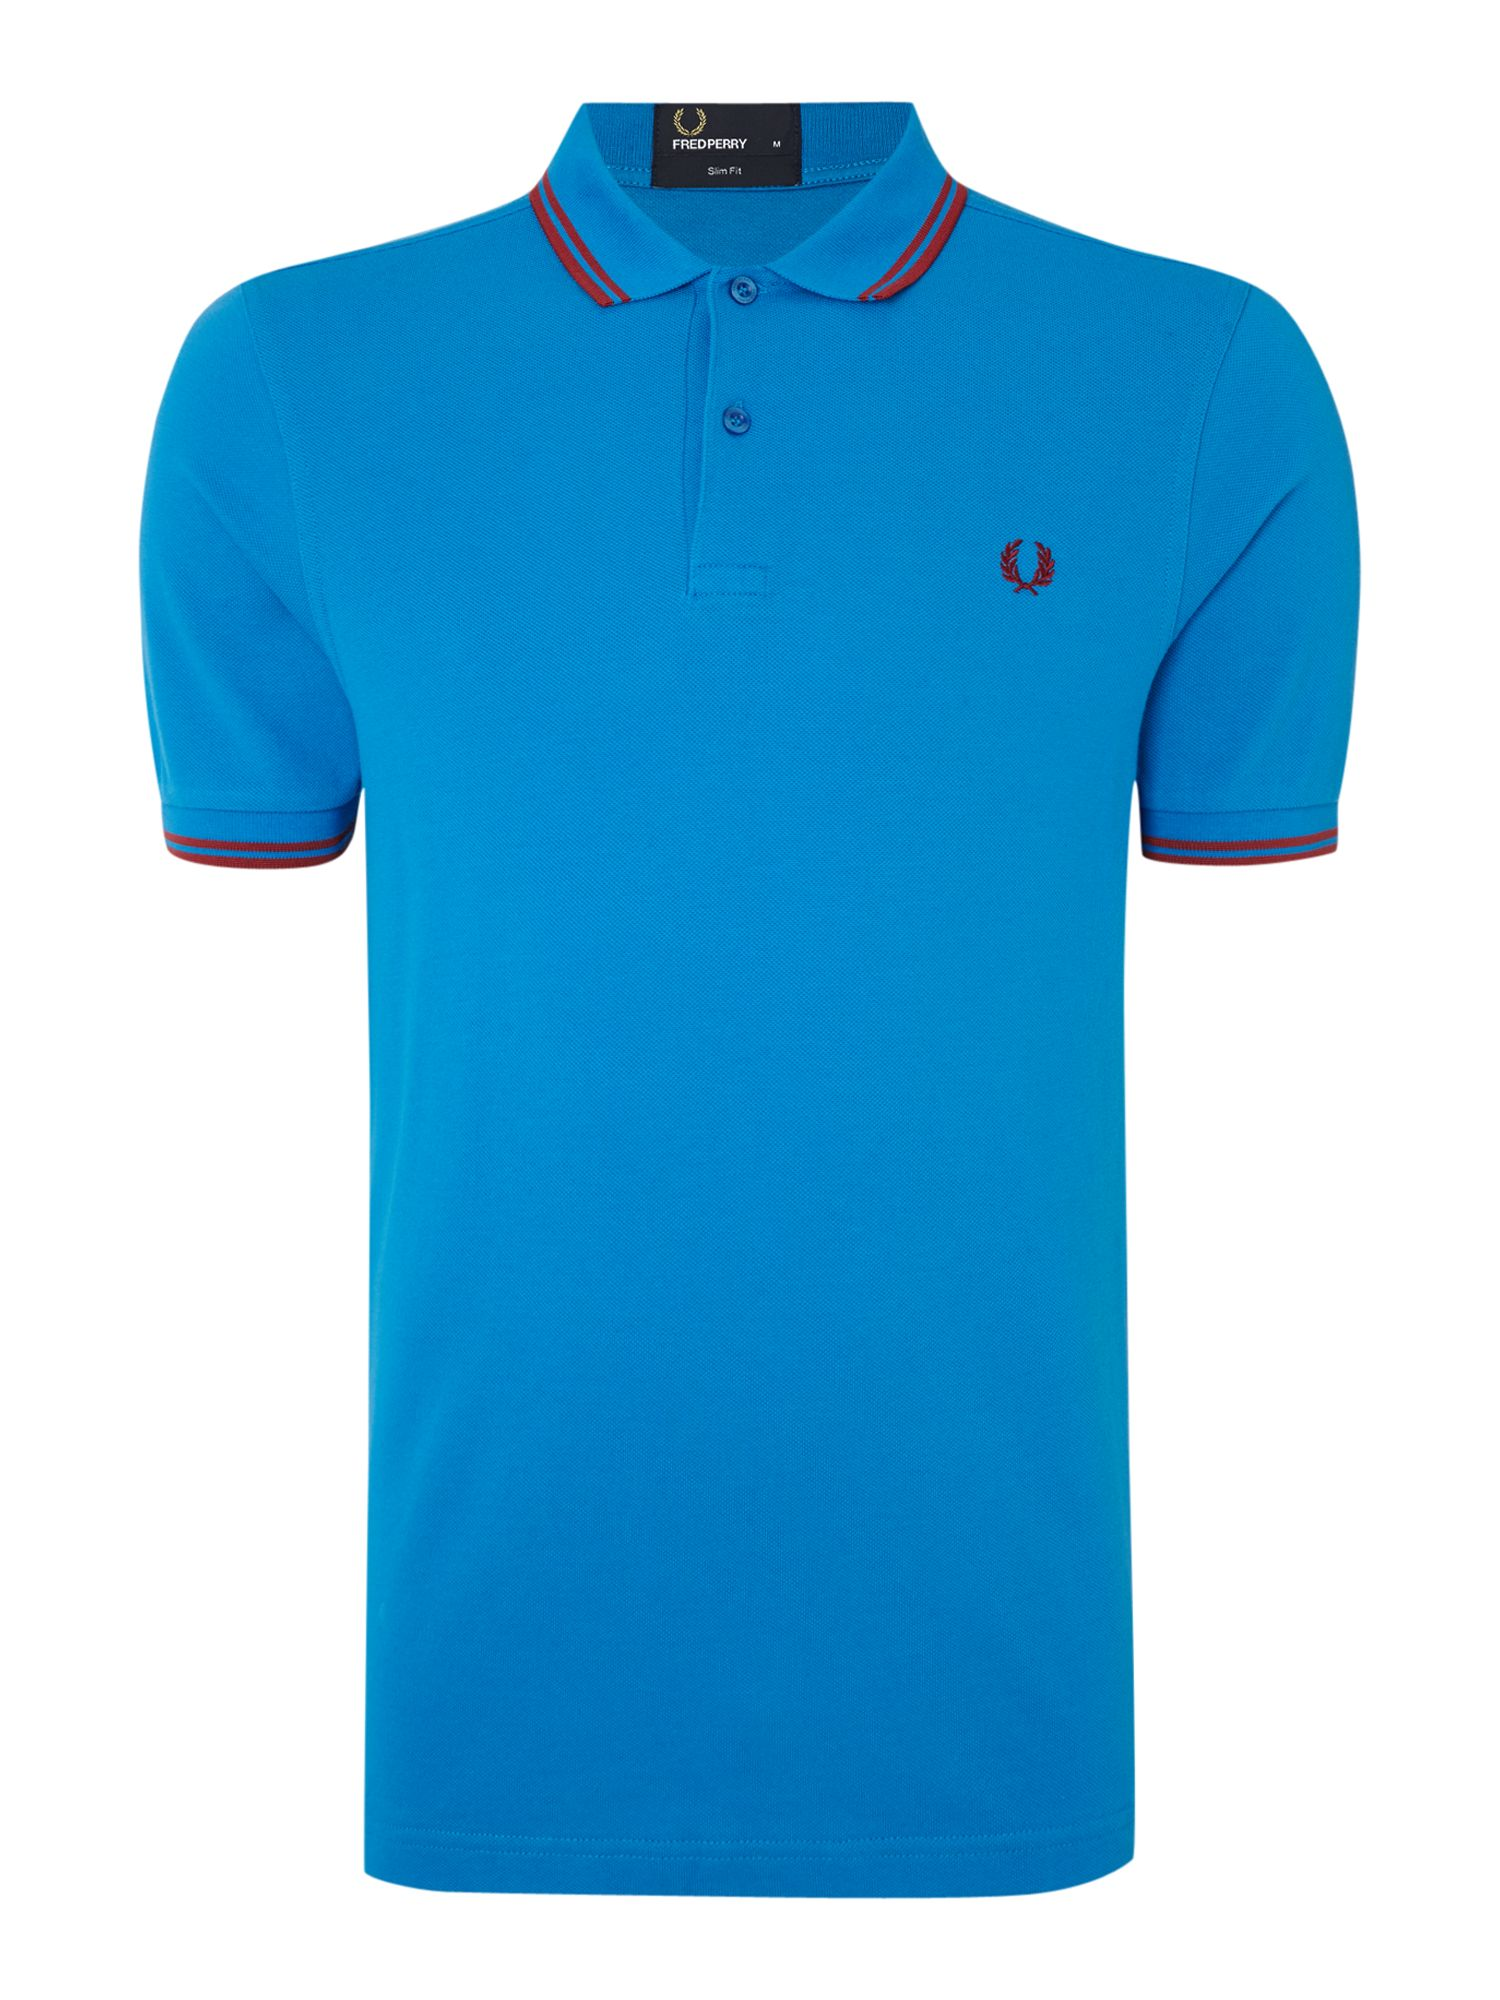 Mens Fred Perry Plain Slim Fit Polo Shirt Bright Blue